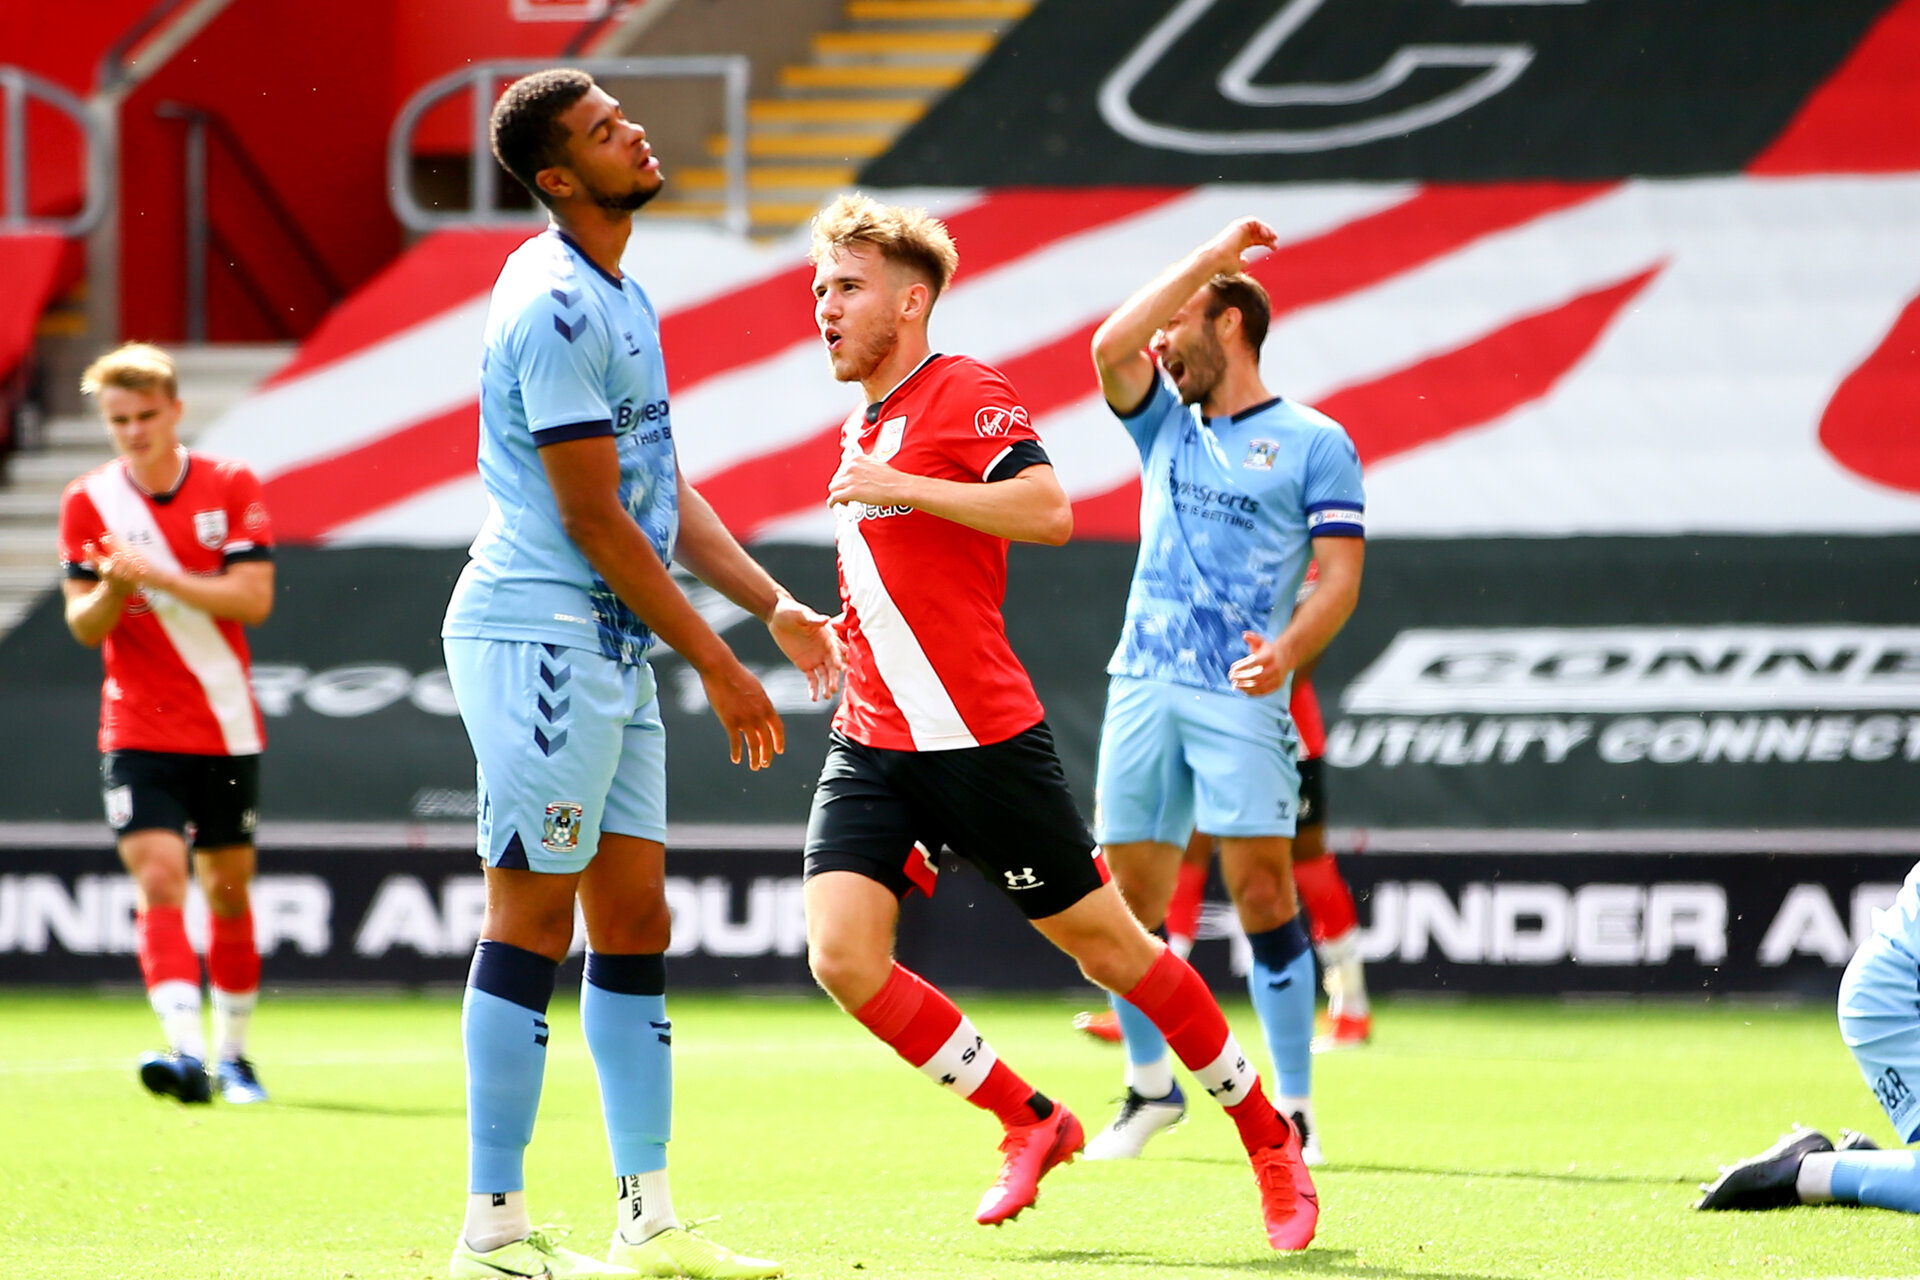 SOUTHAMPTON, ENGLAND - SEPTEMBER 1: Jake Vokins goal reaction during a pre-season friendly match between Southampton U23 and Coventry City at St Mary's Stadium on September 1, 2020 in Southampton, United Kingdom. (Photo by Isabelle Field/Southampton FC)